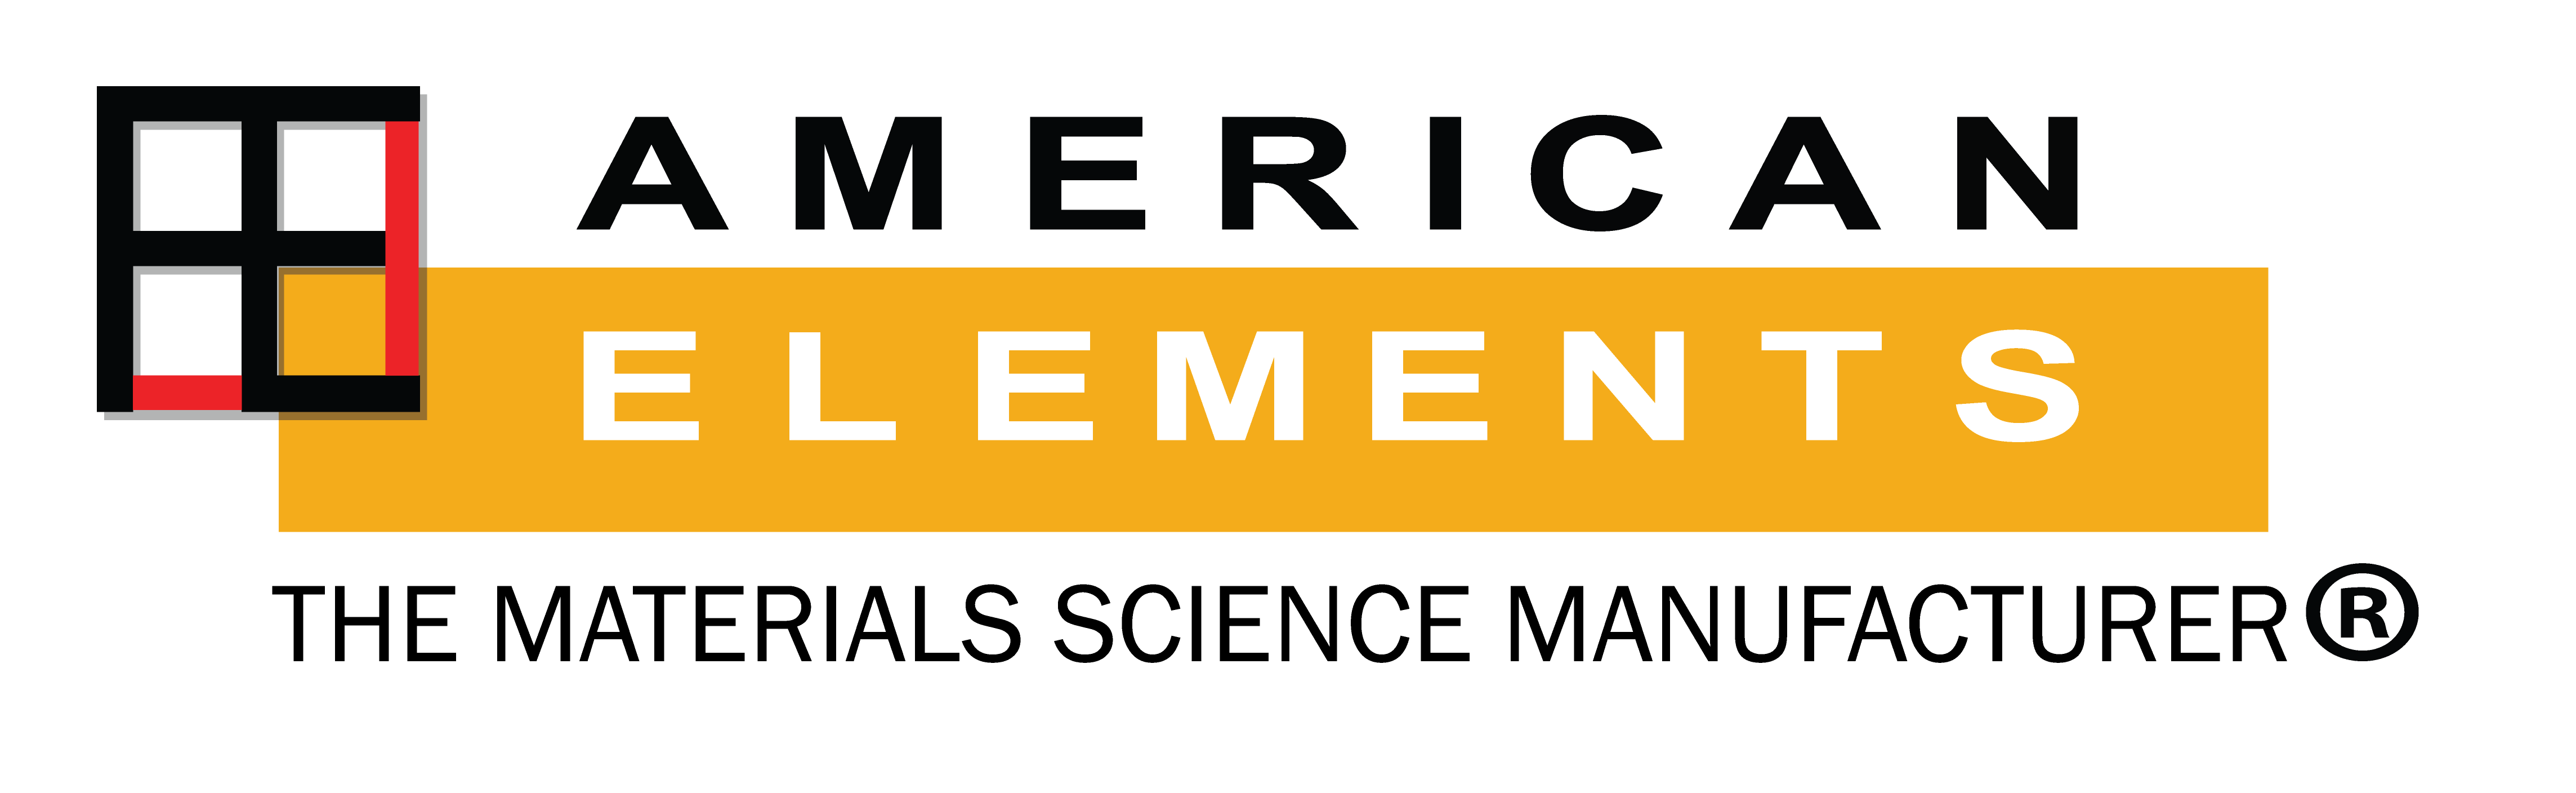 American Elements: global manufacturer of advanced materials for nanotechnology, energy storage, electronics, biotechnology, high purity batteries, fuel cells, photovoltaic solar panels, & materials chemistry